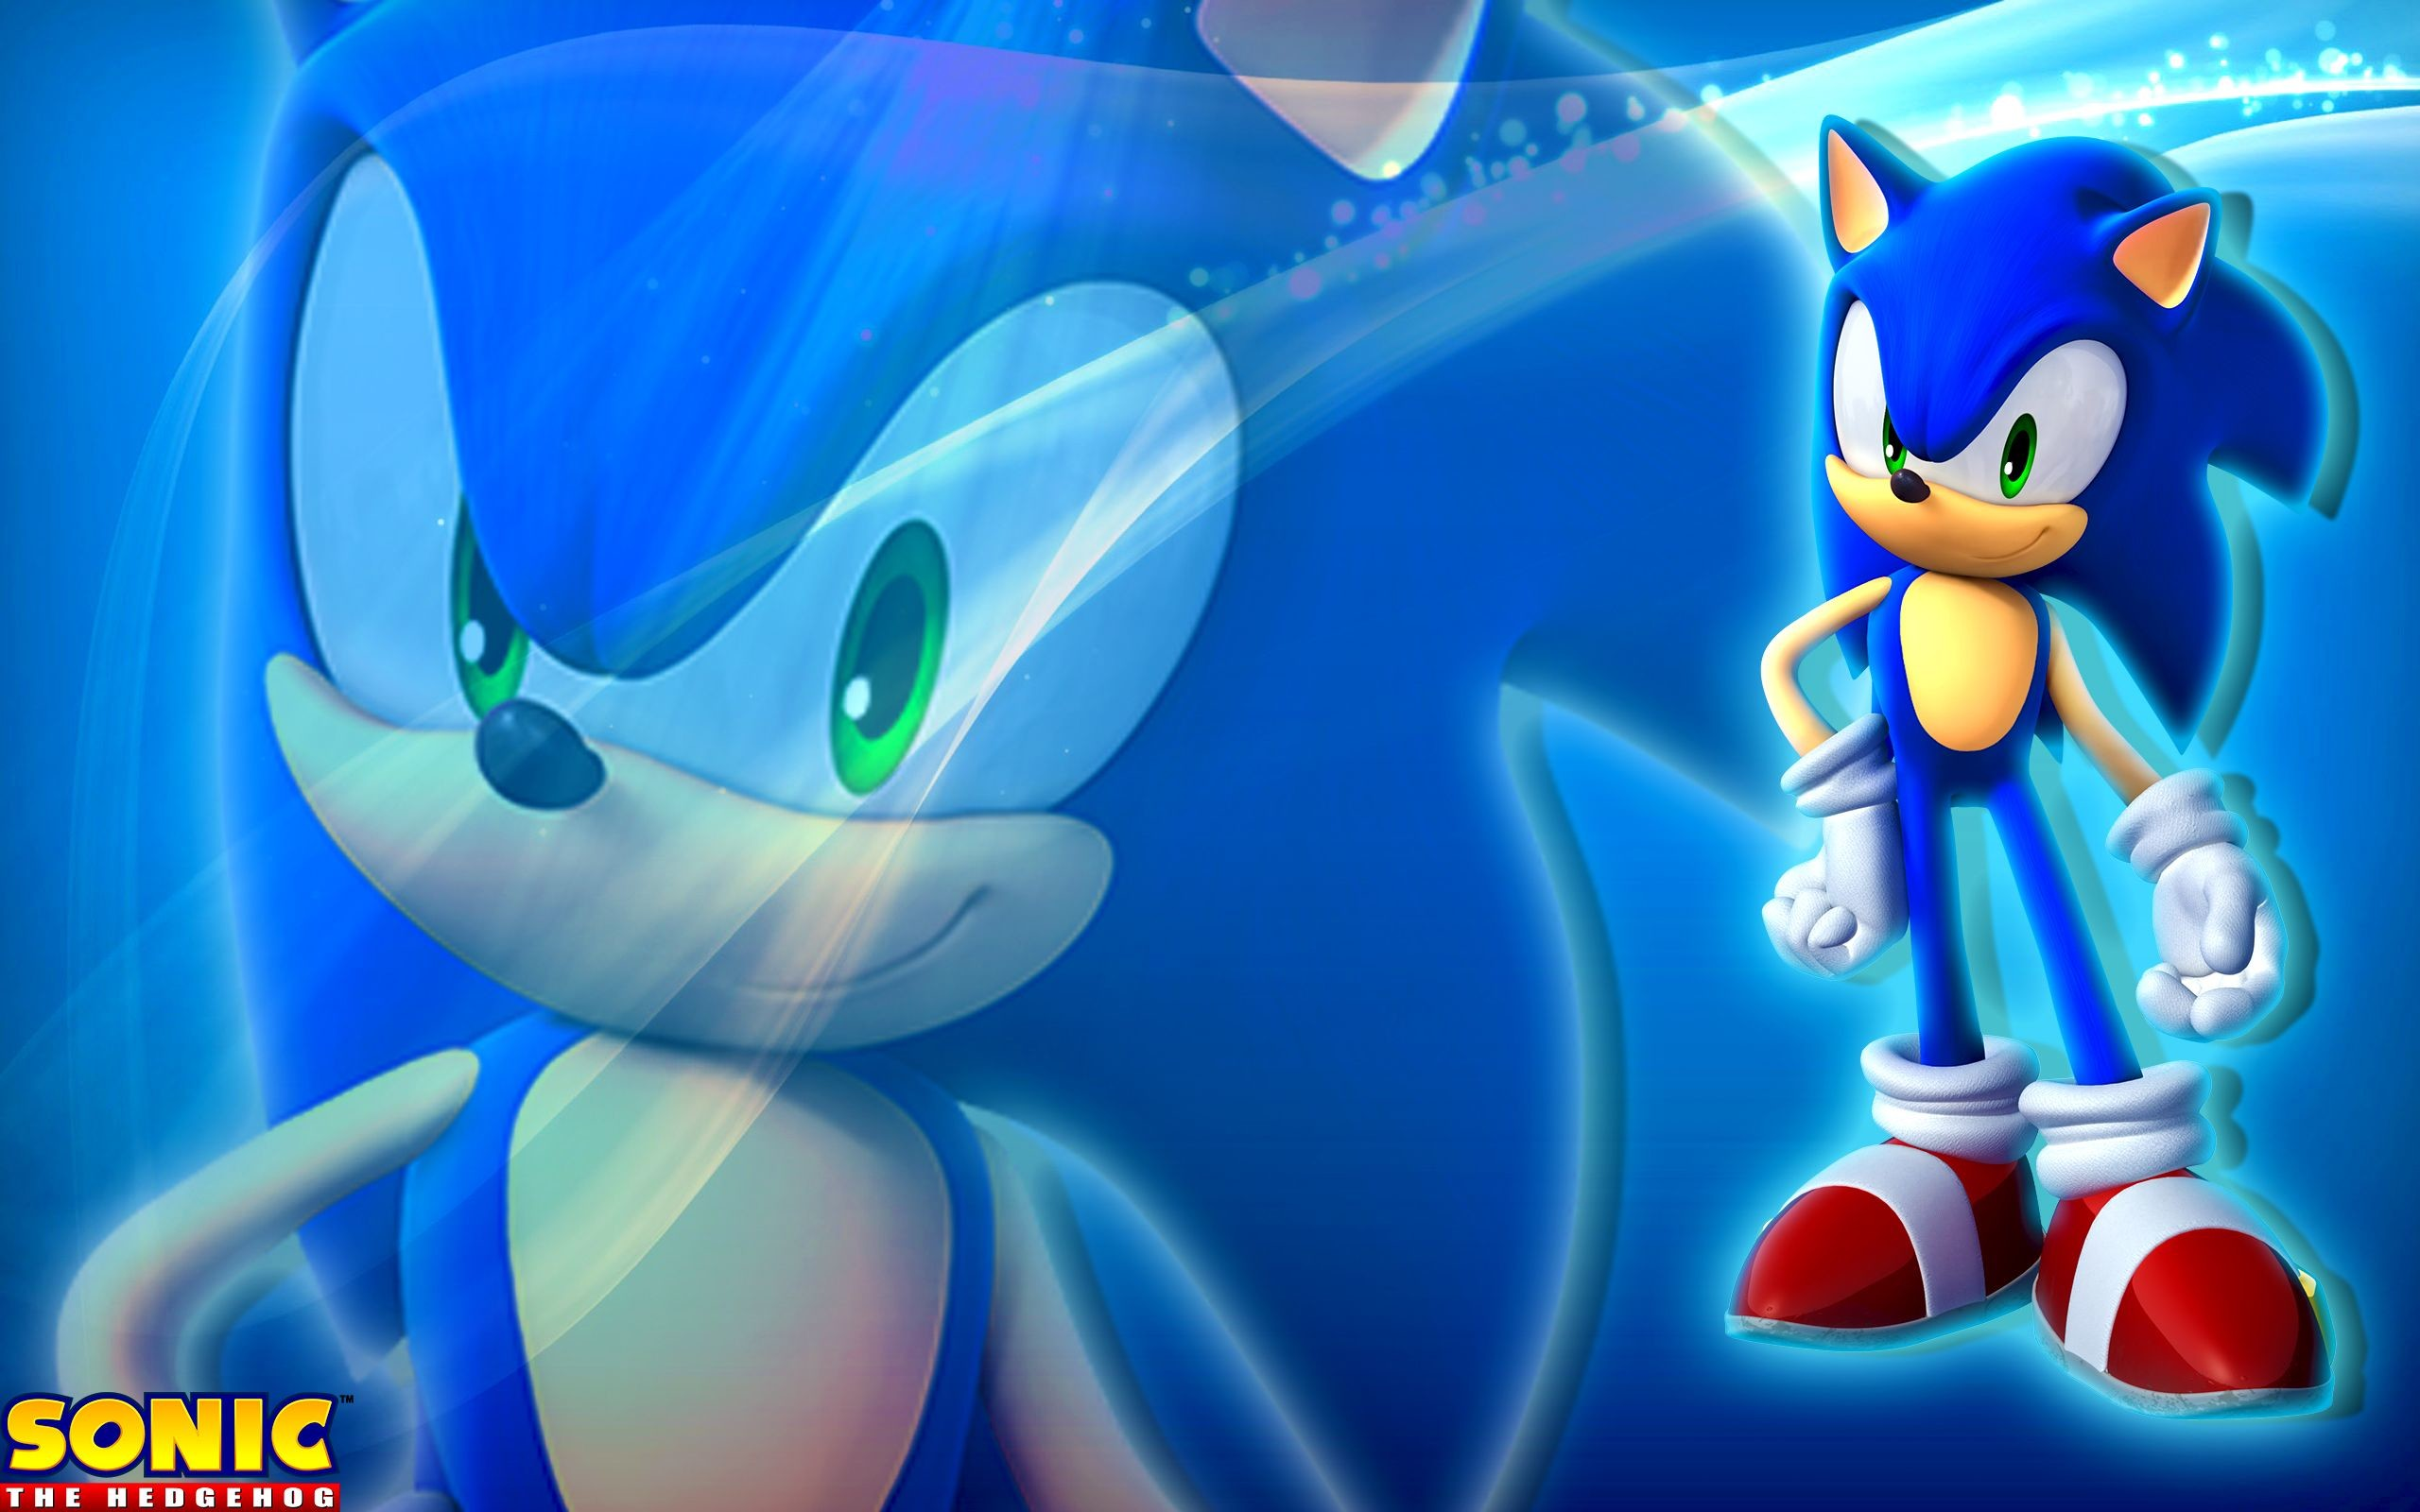 Sonic The Hedgehog Backgrounds 81 Images